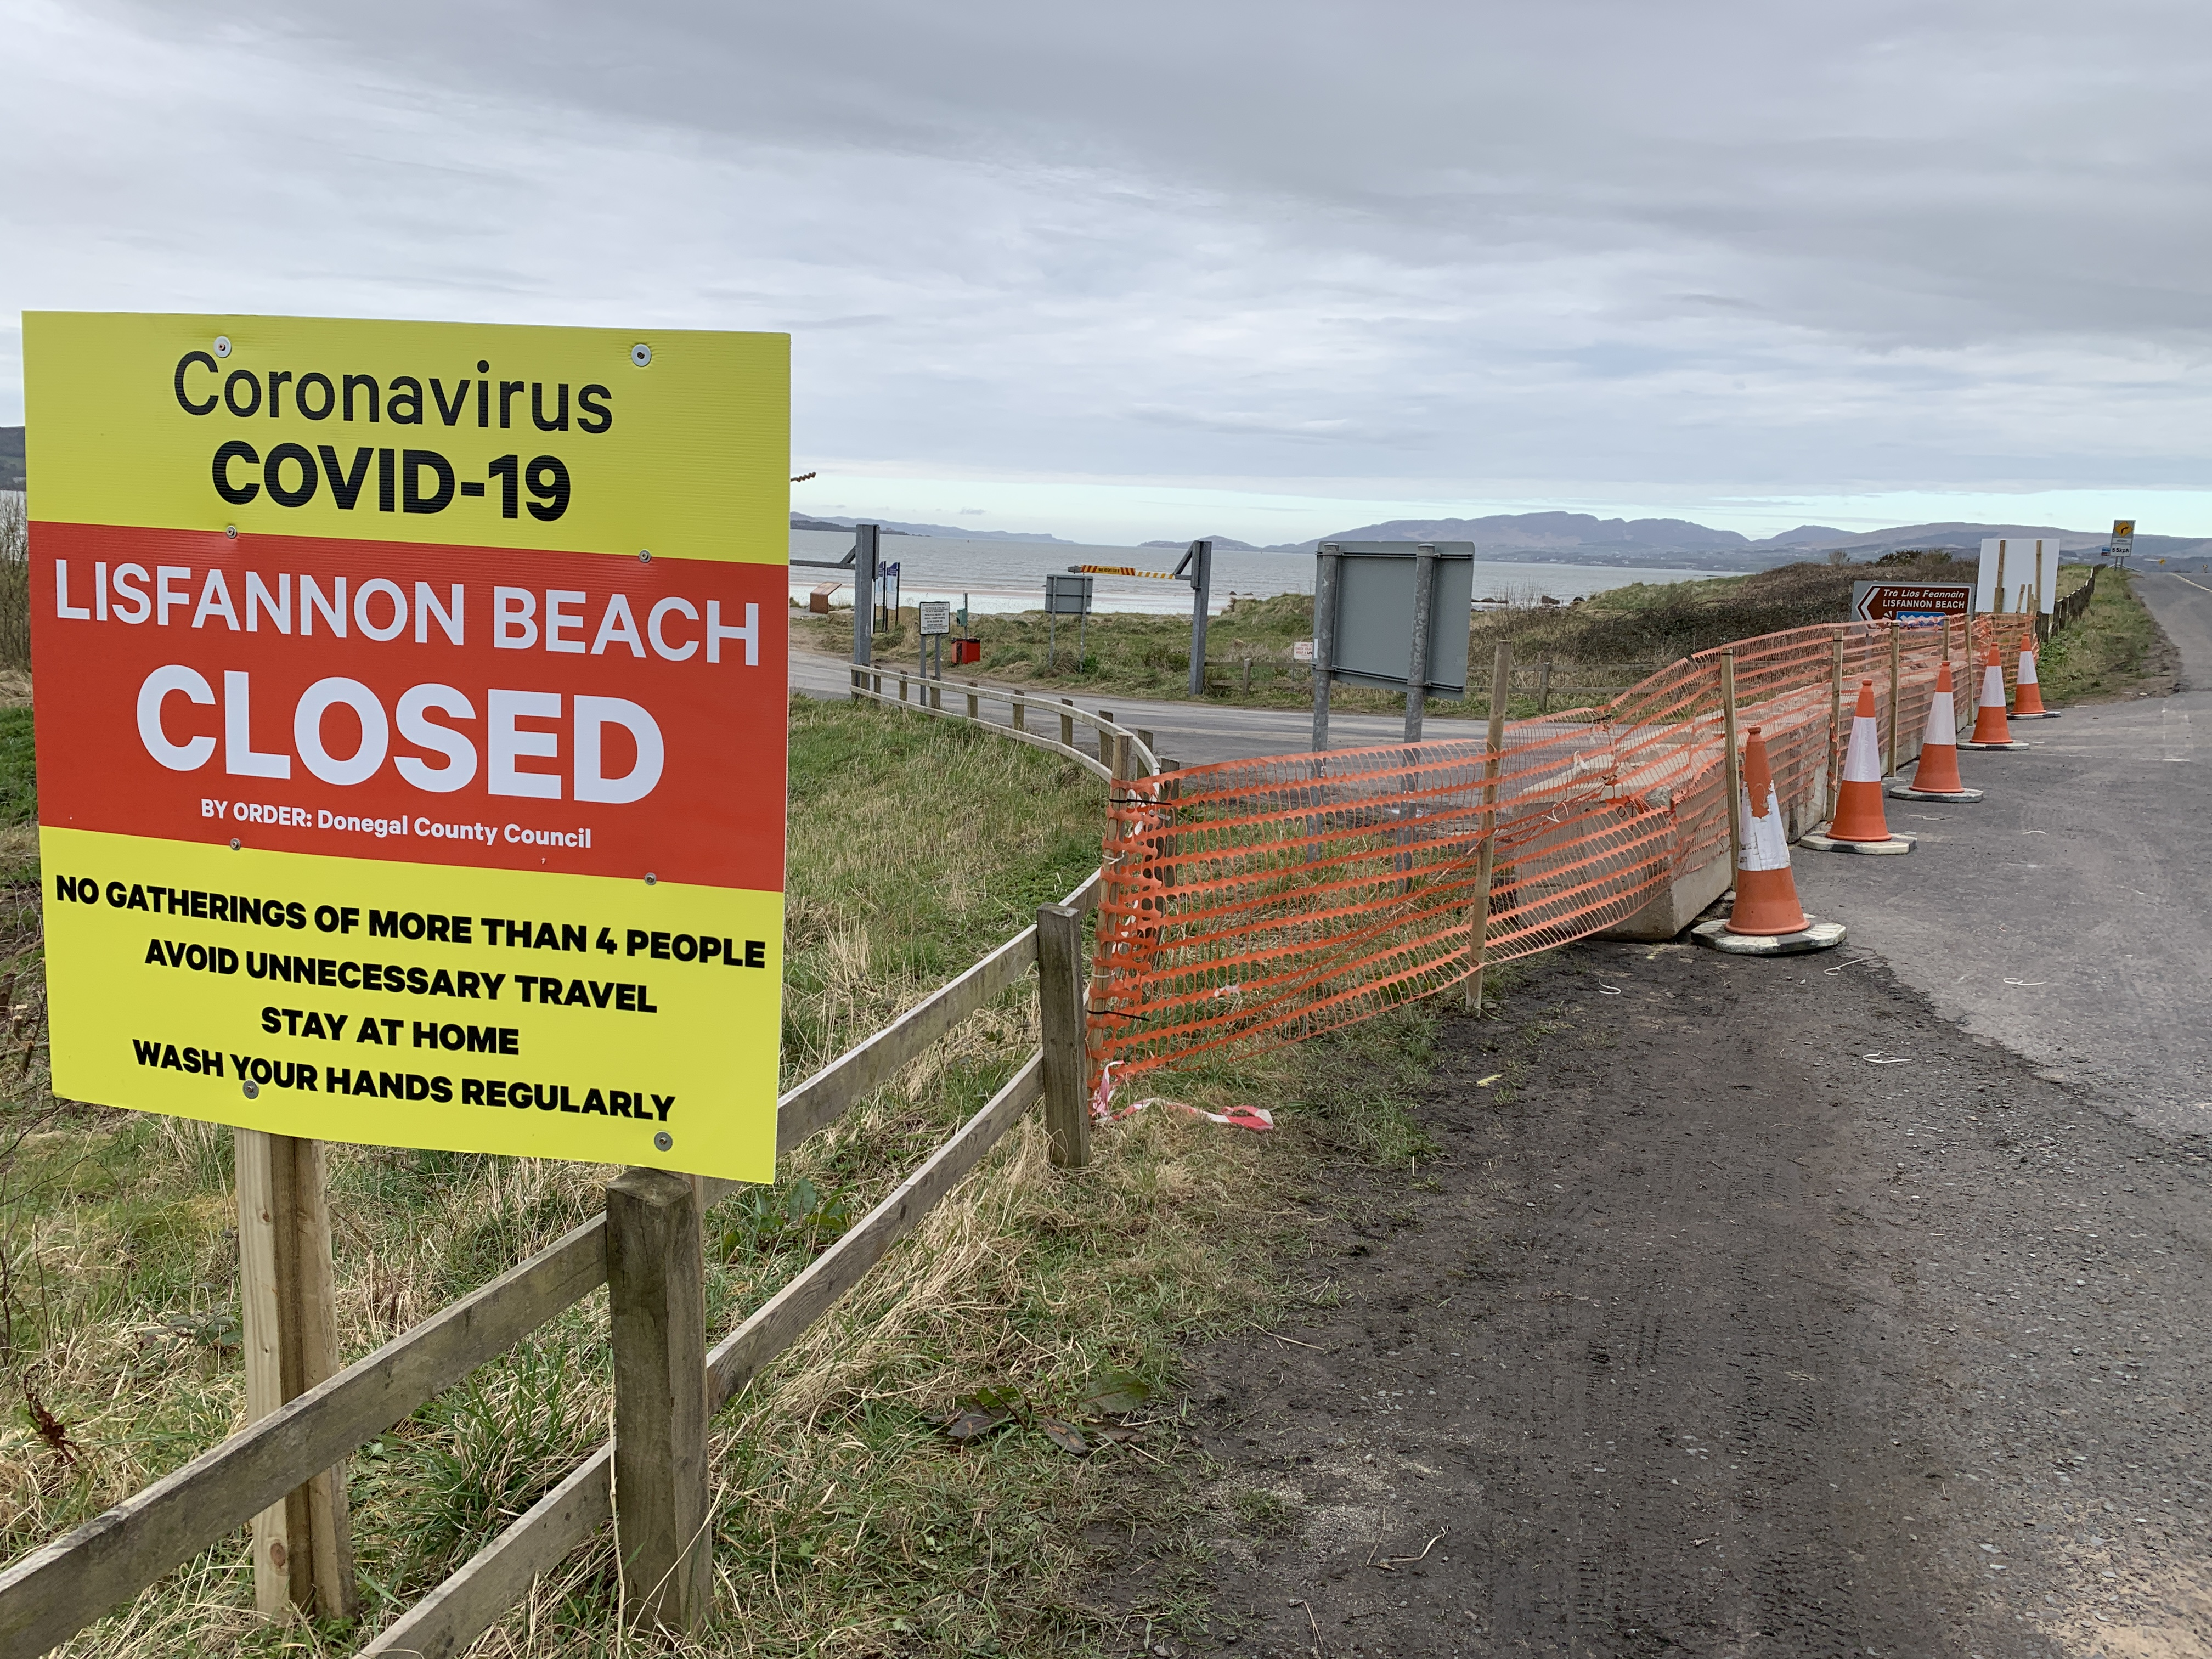 Lisfannon Beach at Fahan. Closed by order of Donegal County Council.